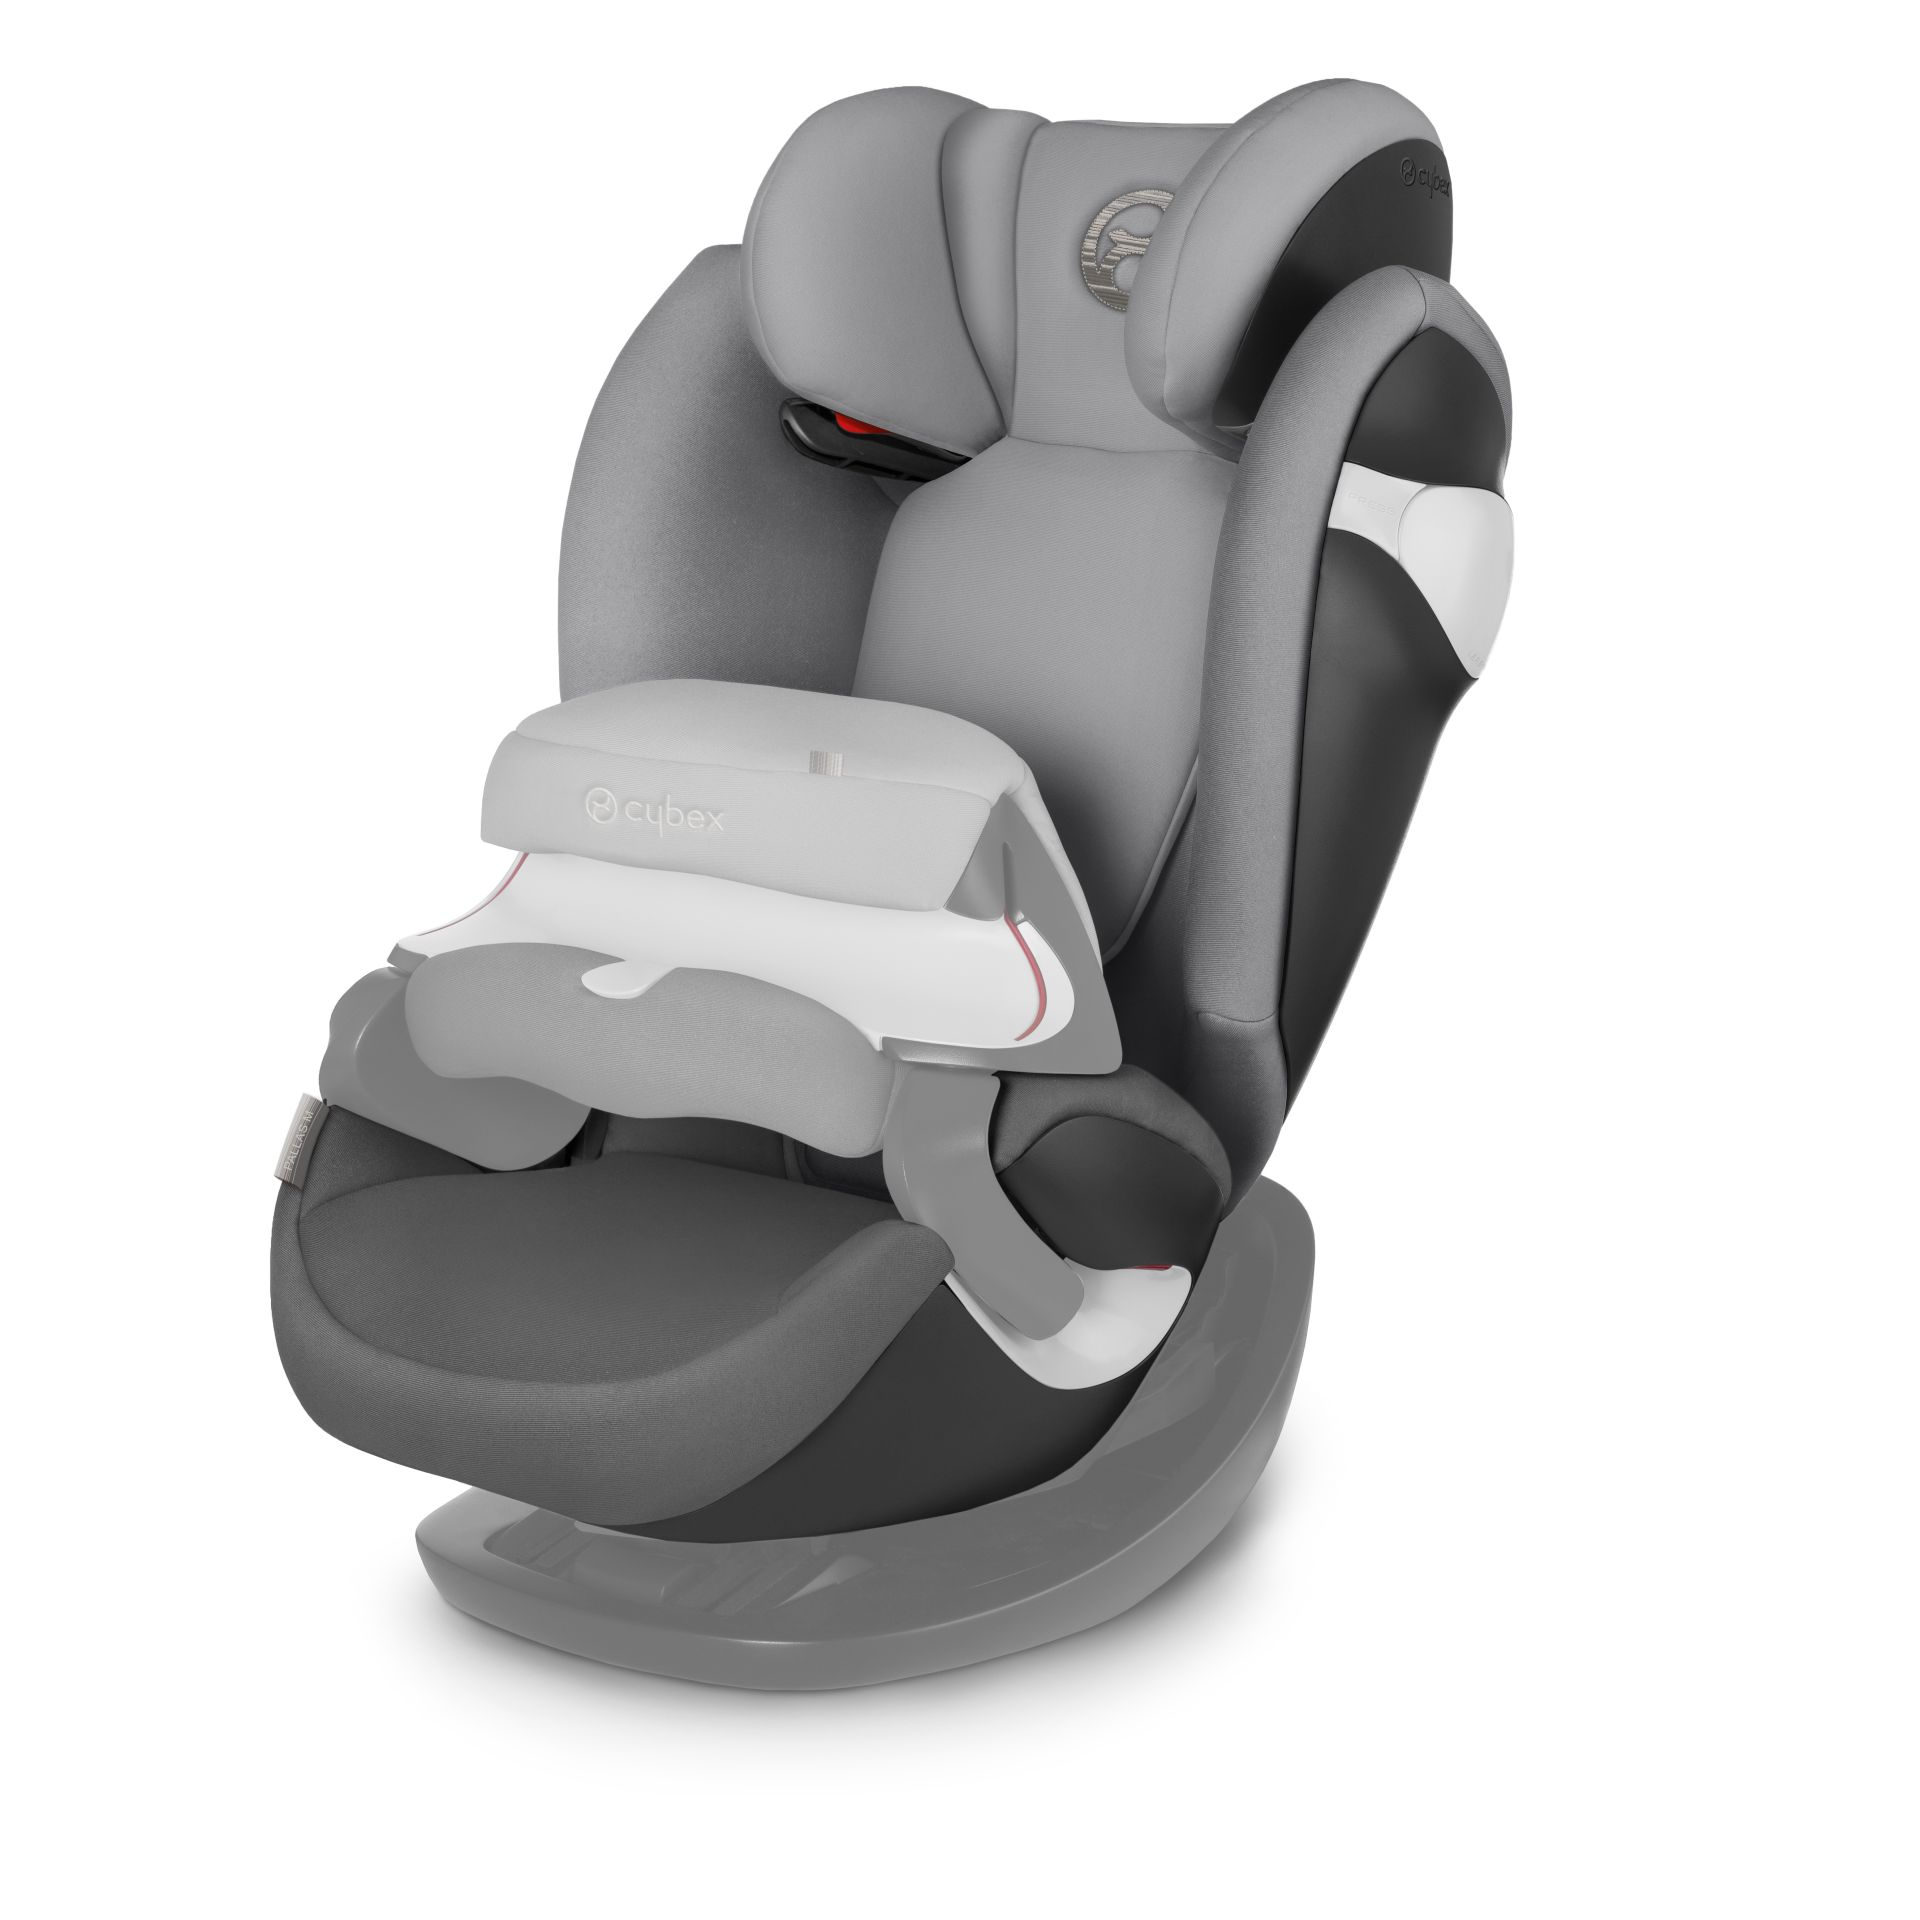 cybex child car seat pallas m buy at kidsroom car seats. Black Bedroom Furniture Sets. Home Design Ideas